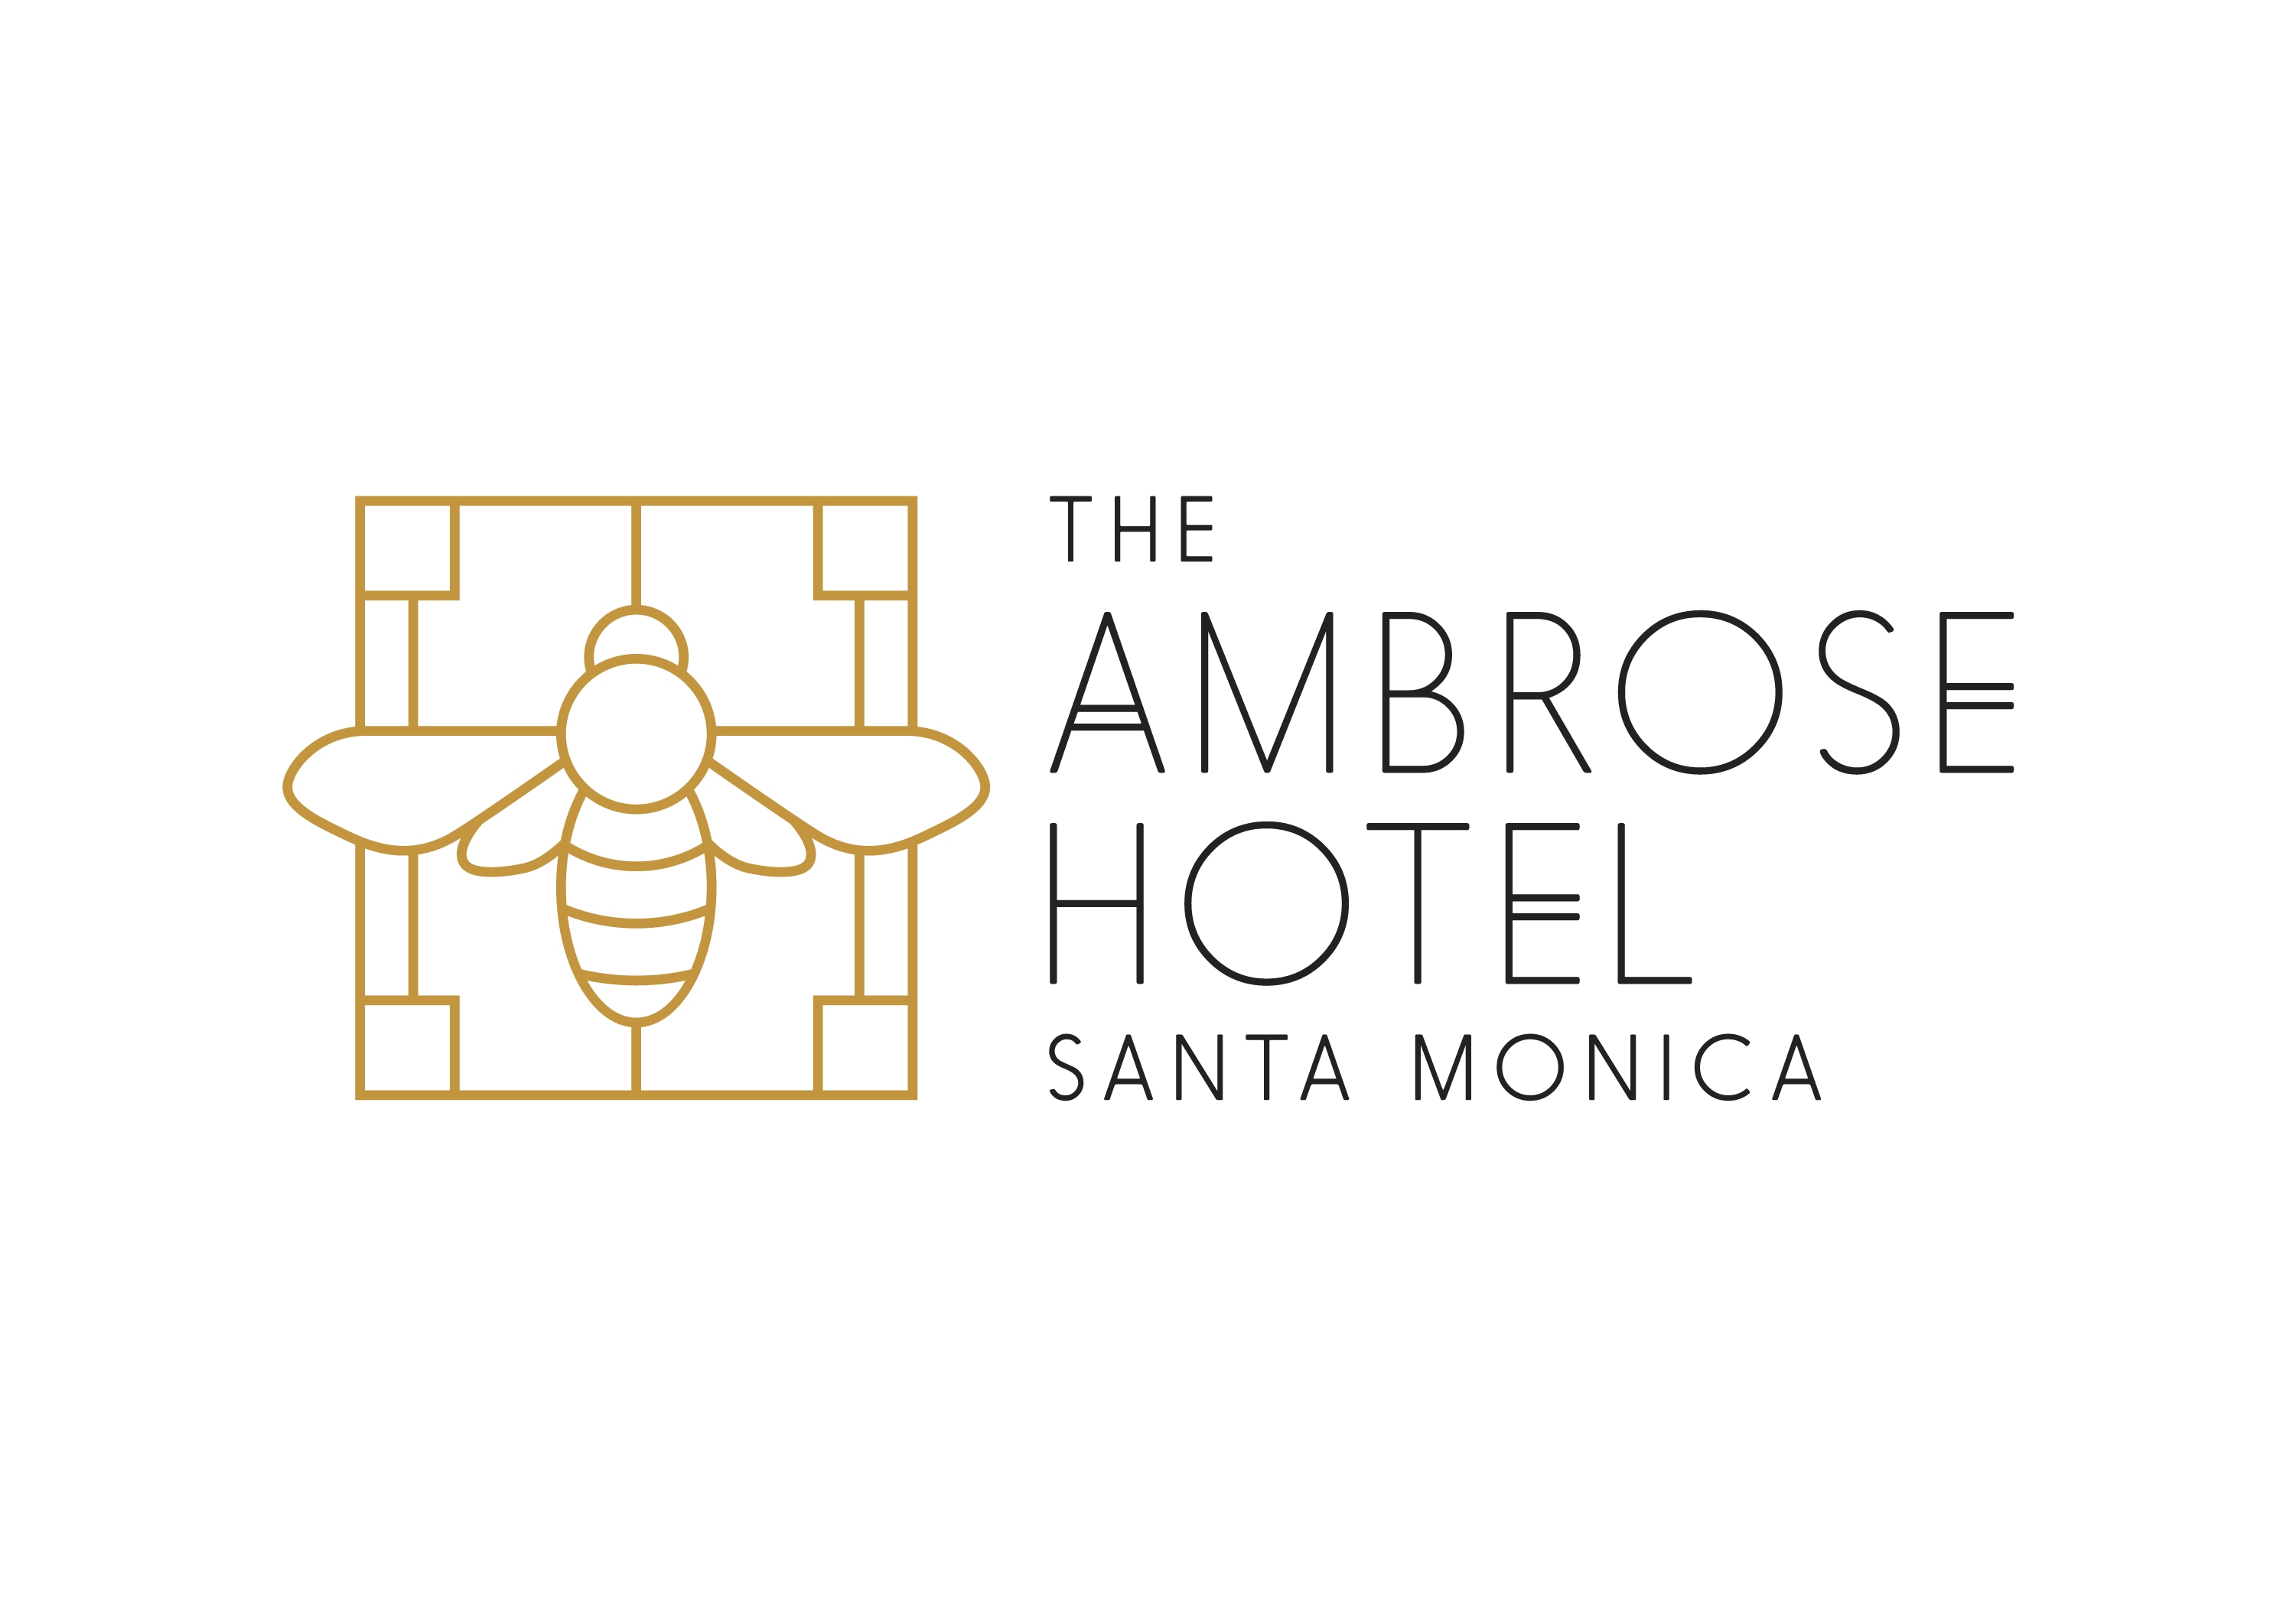 The Ambrose Hotel, Santa Monica Logo